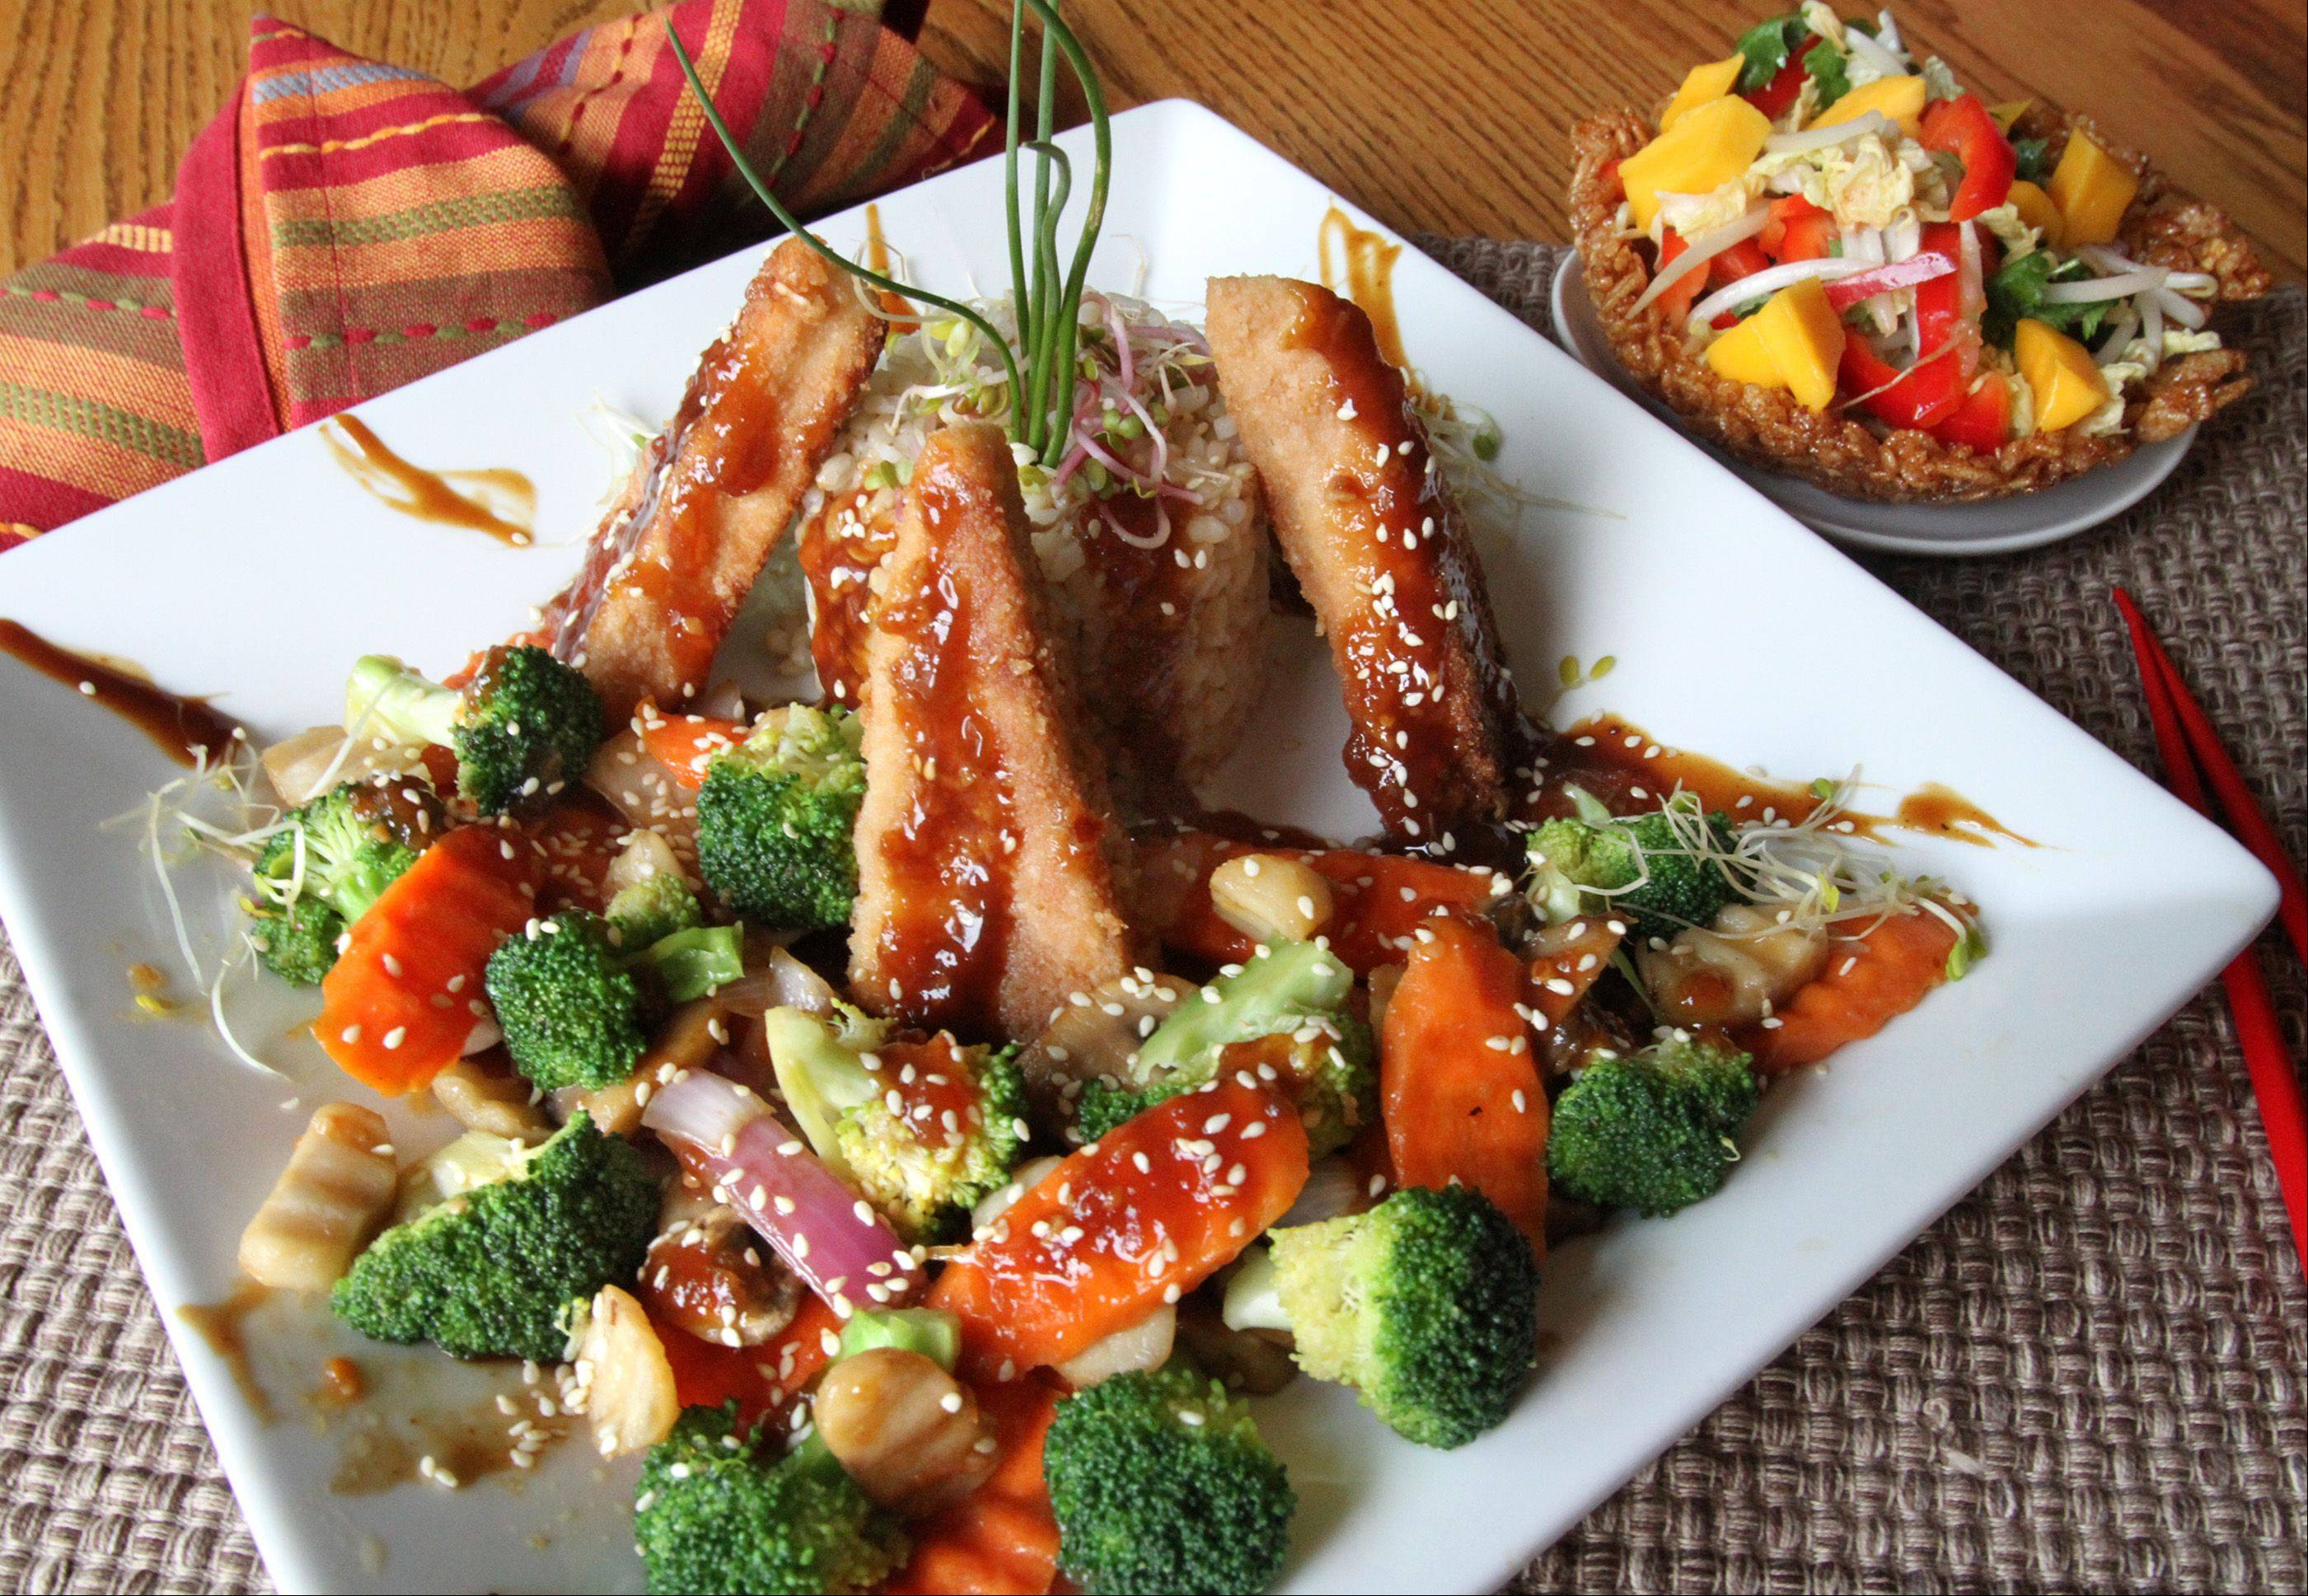 Crispy Fried Tofu with Stir-Fried Vegetables and Brown Rice